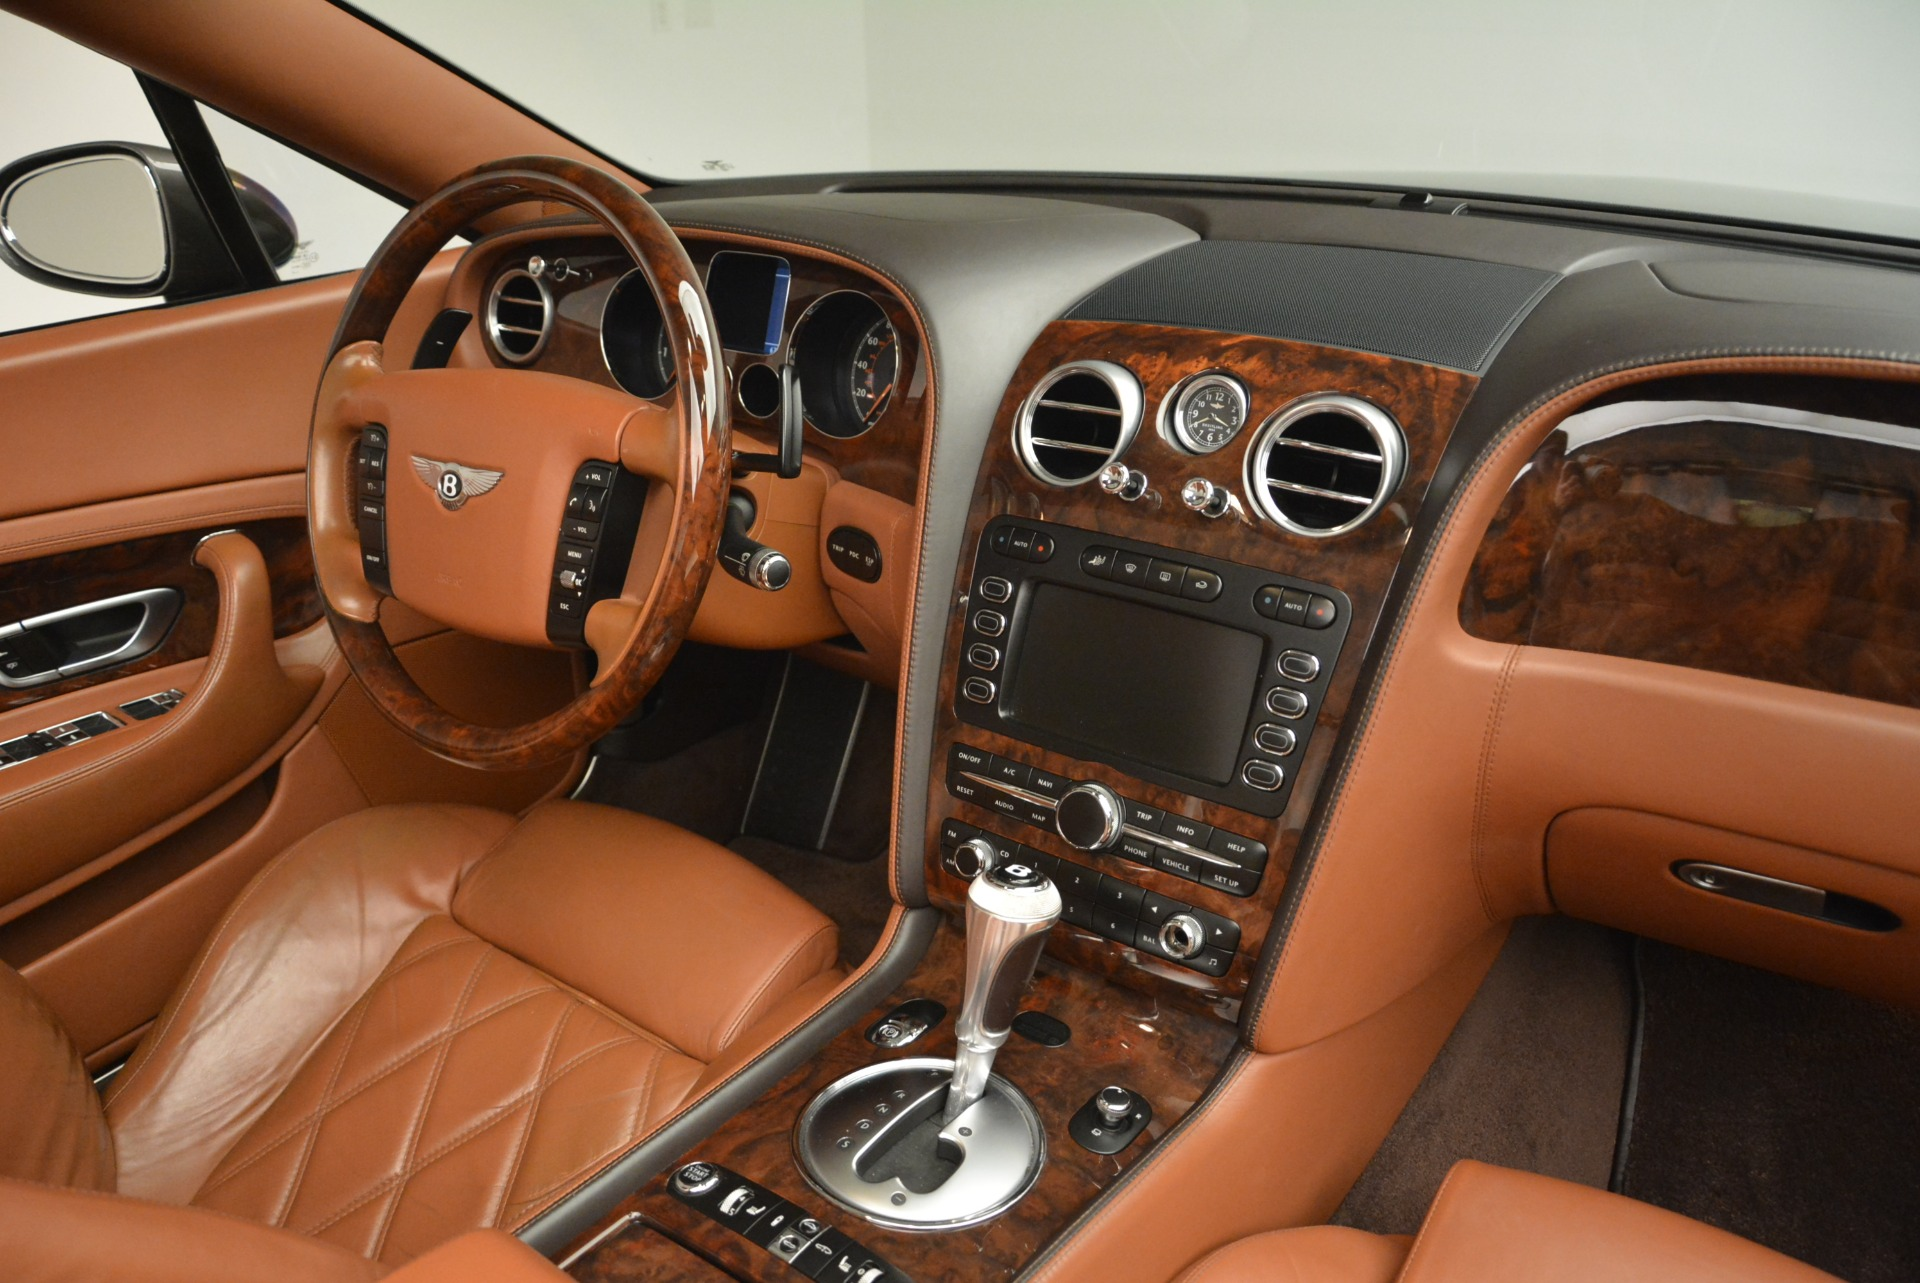 Used 2008 Bentley Continental GT W12 For Sale In Greenwich, CT 2190_p43